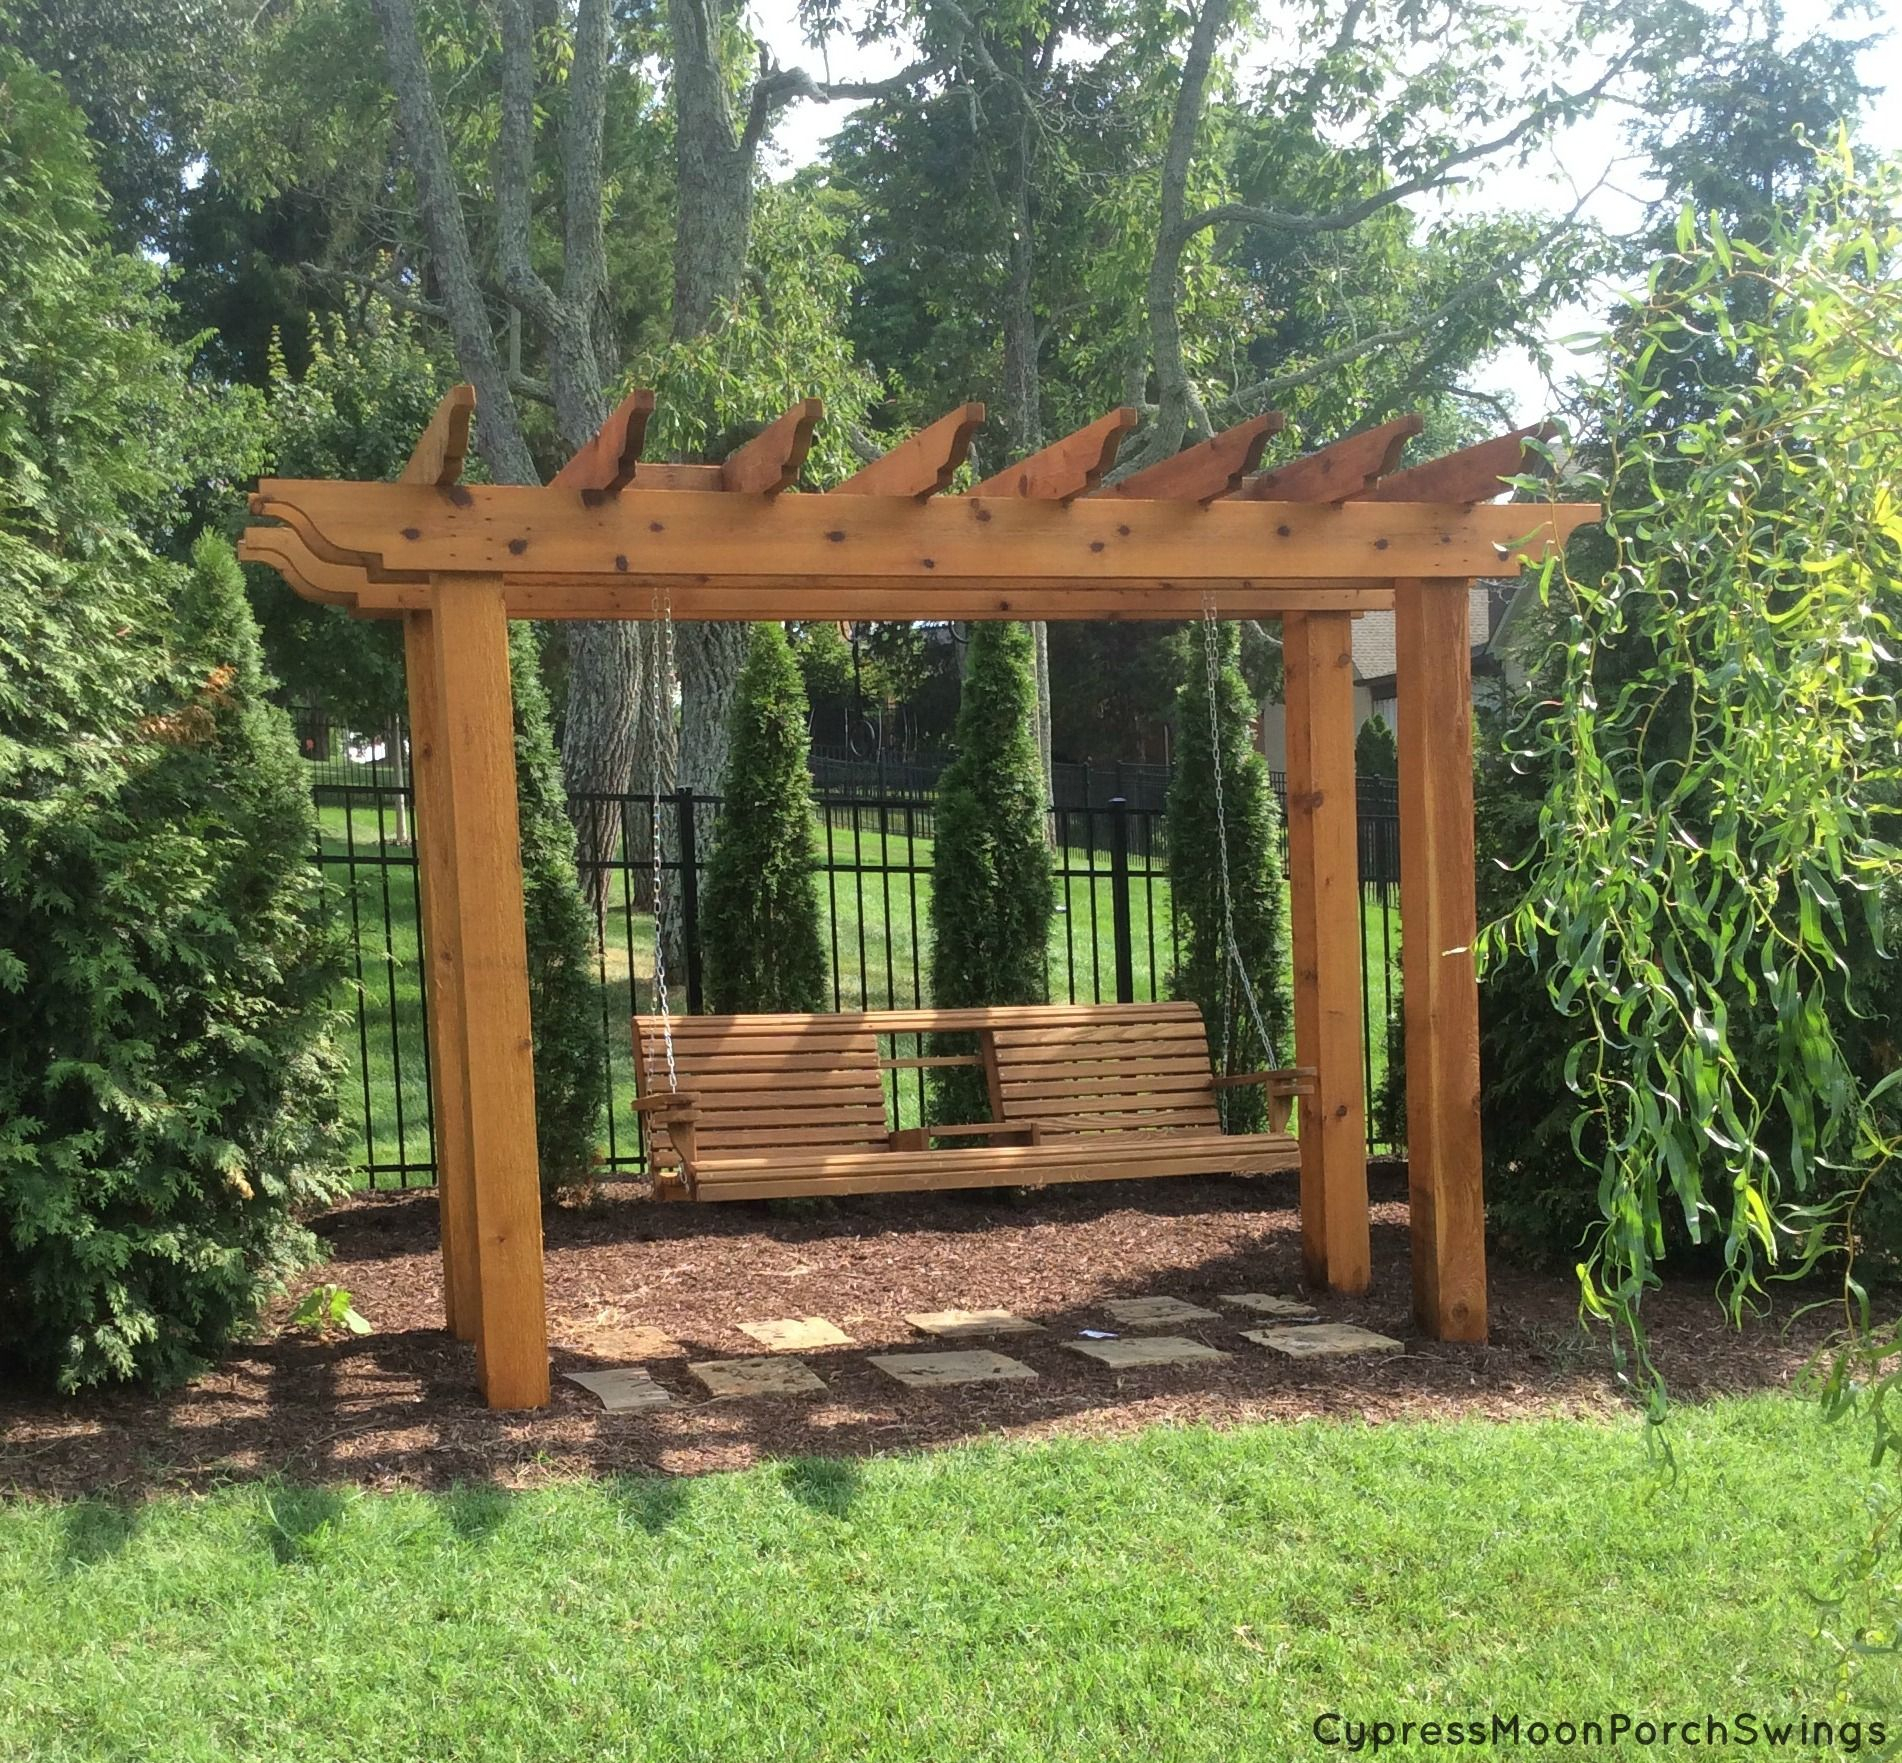 An Awesome Porch Swing Gazebo Featuring The Cypress Moon Regarding Patio Gazebo Porch Swings (View 6 of 25)